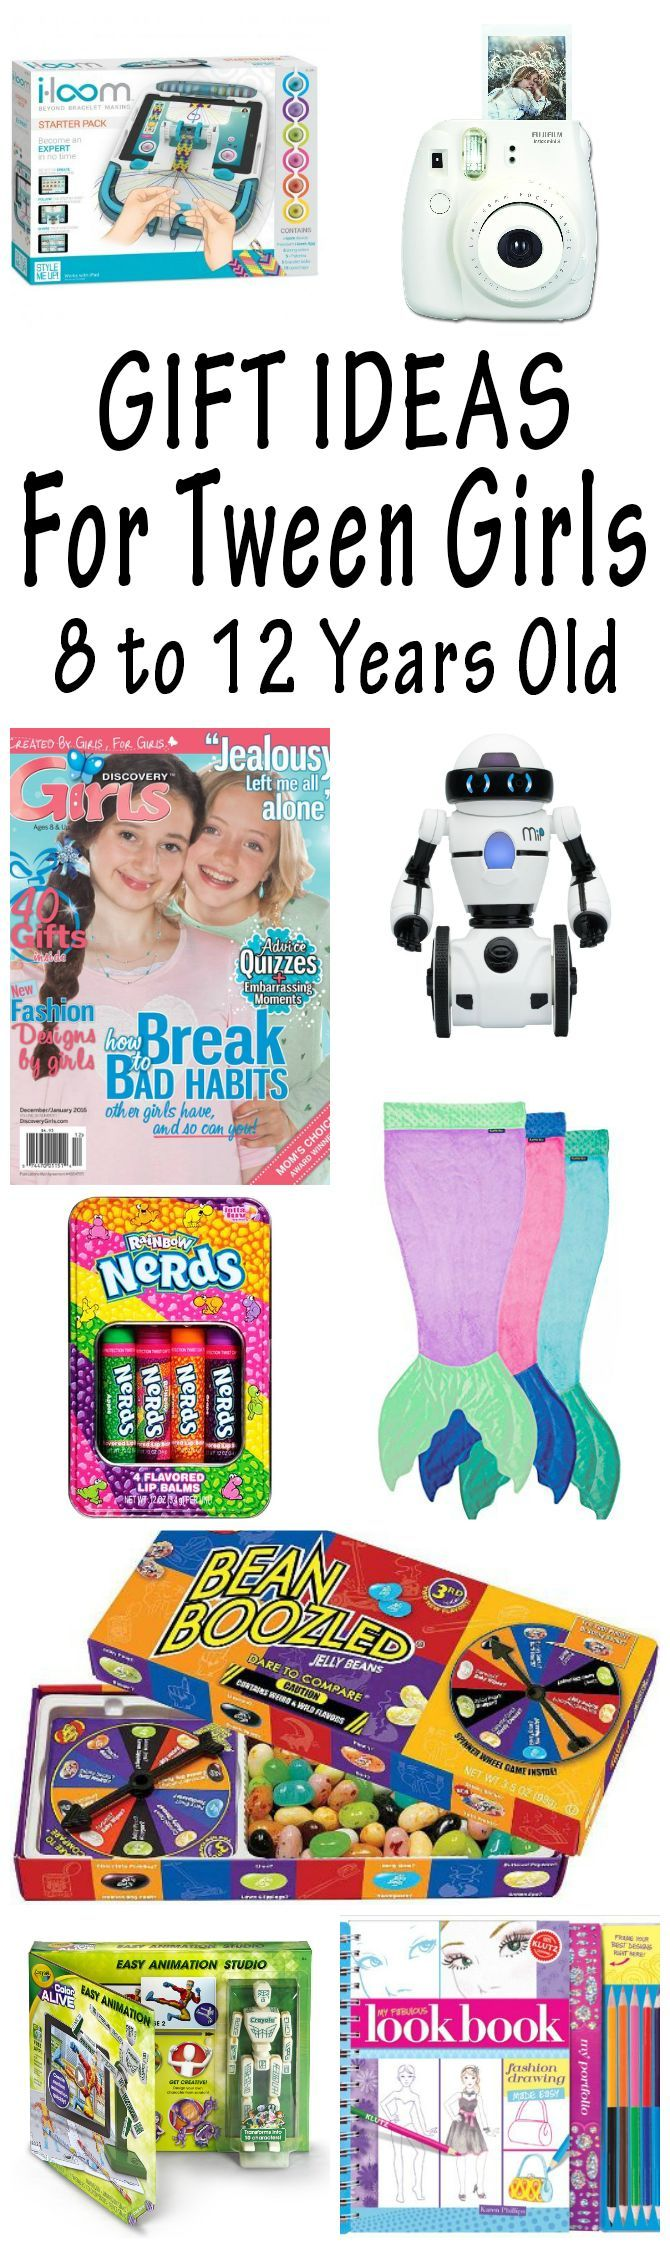 Lovely Christmas Gift Ideas For 12 Year Old Girls Part - 13: Lots Of Great Gift Ideas For Tween Girls 8 To 12 Years Old!